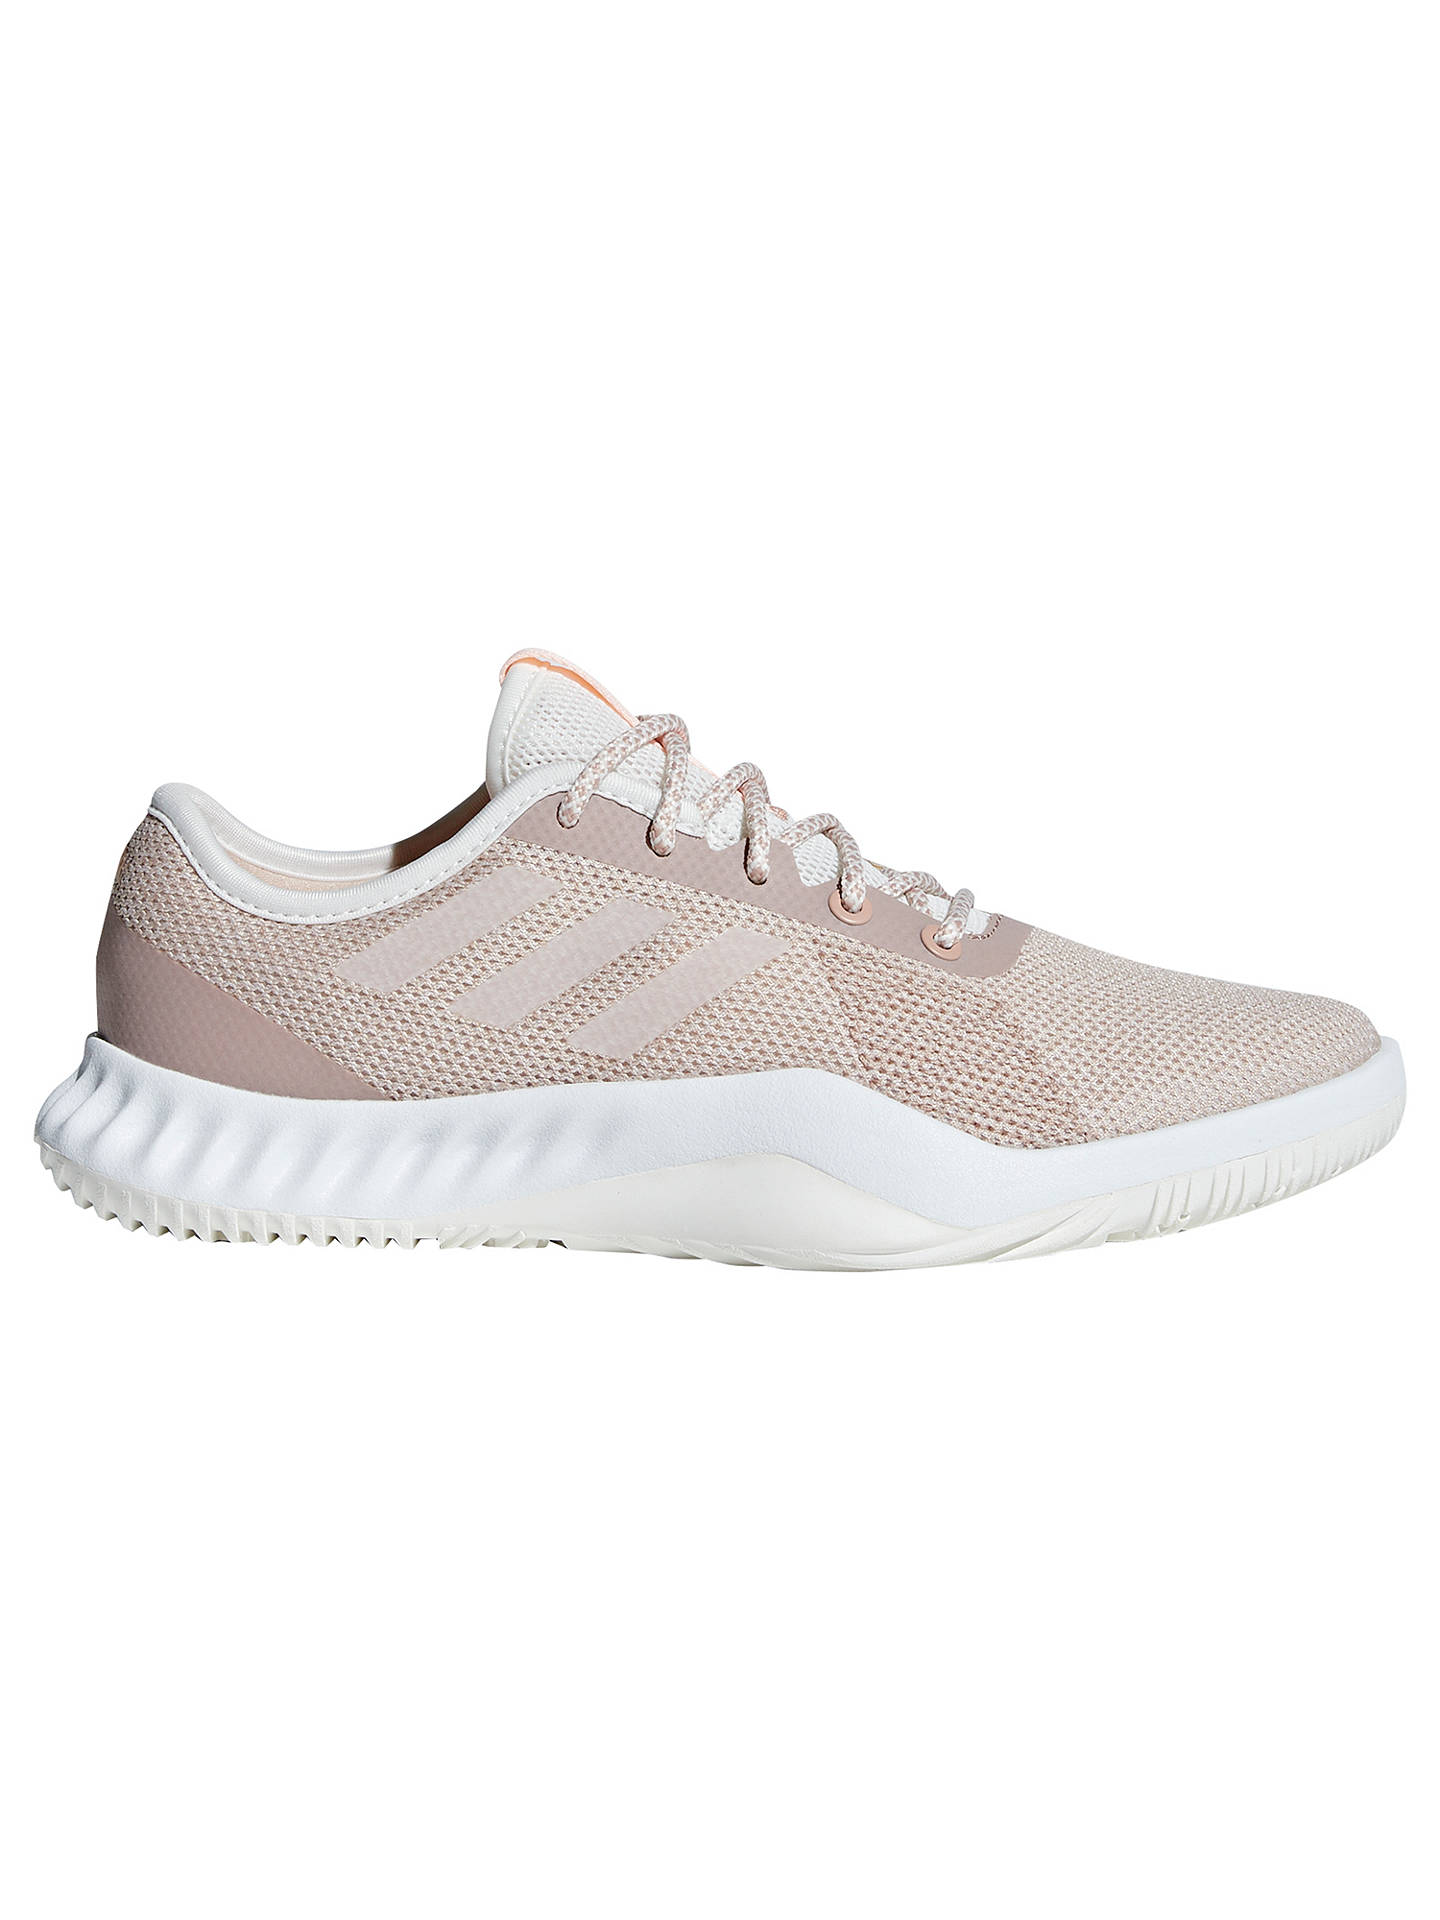 f0acc3dfb955b Buy adidas CrazyTrain LT Women s Training Shoes